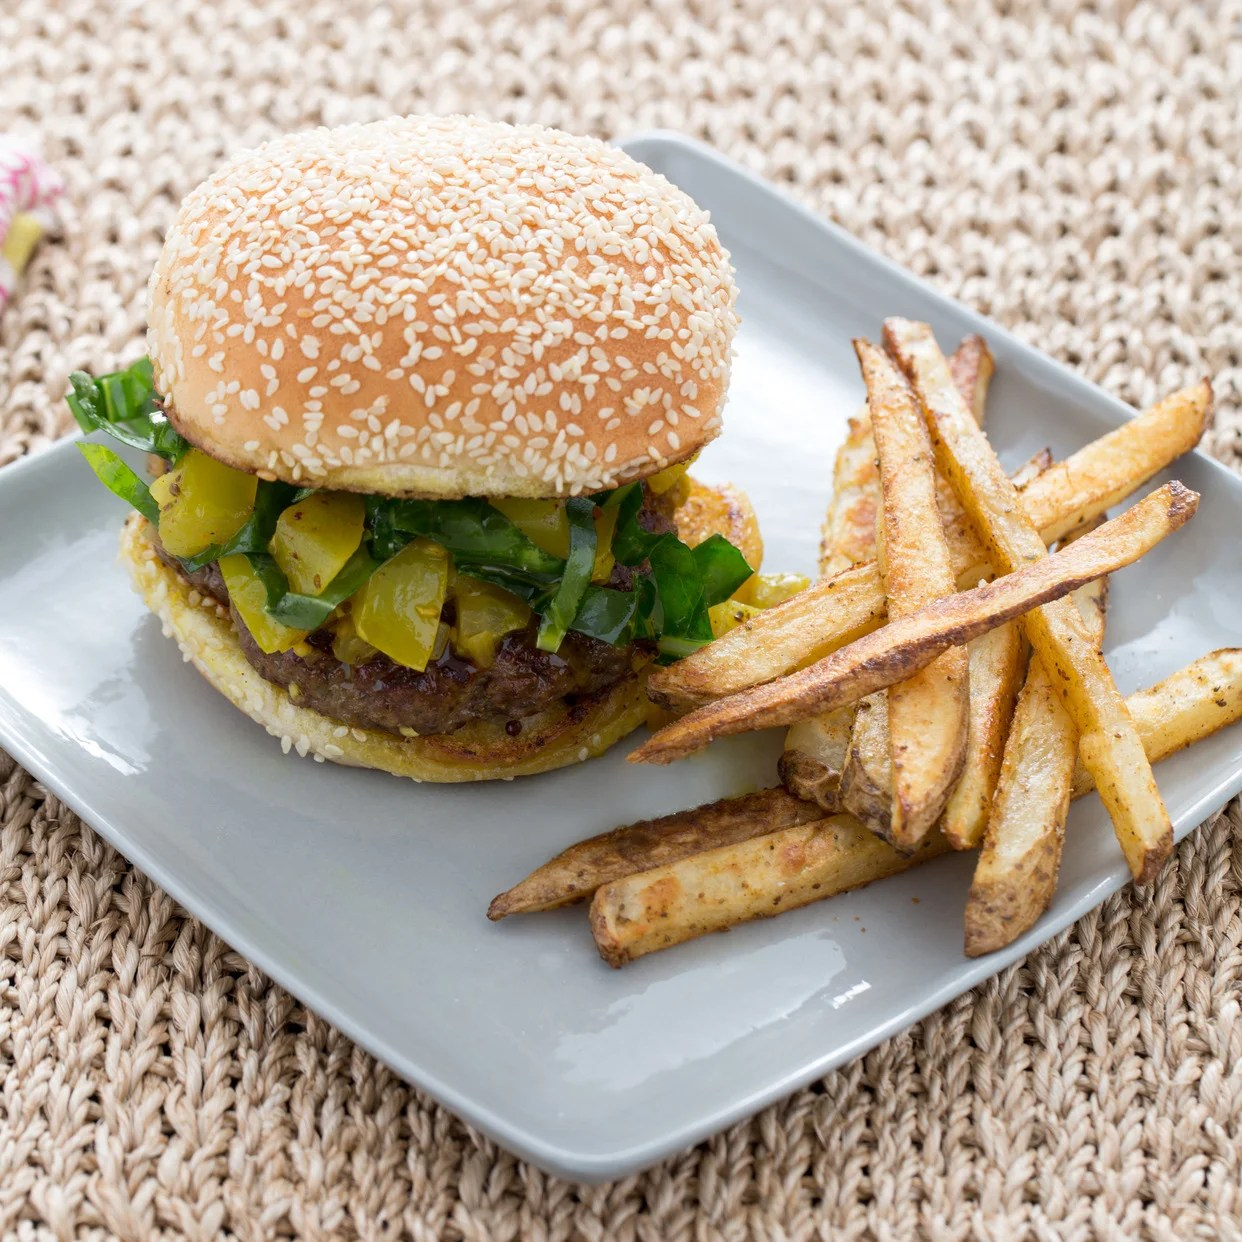 Sophisticated Burgers Green Tomato Chow Chow Bay Oven Fries Burgers Green Tomato Chow Chow Bay Chow Chow Food Delivery Chow Chow Food Chart bark post Chow Chow Food